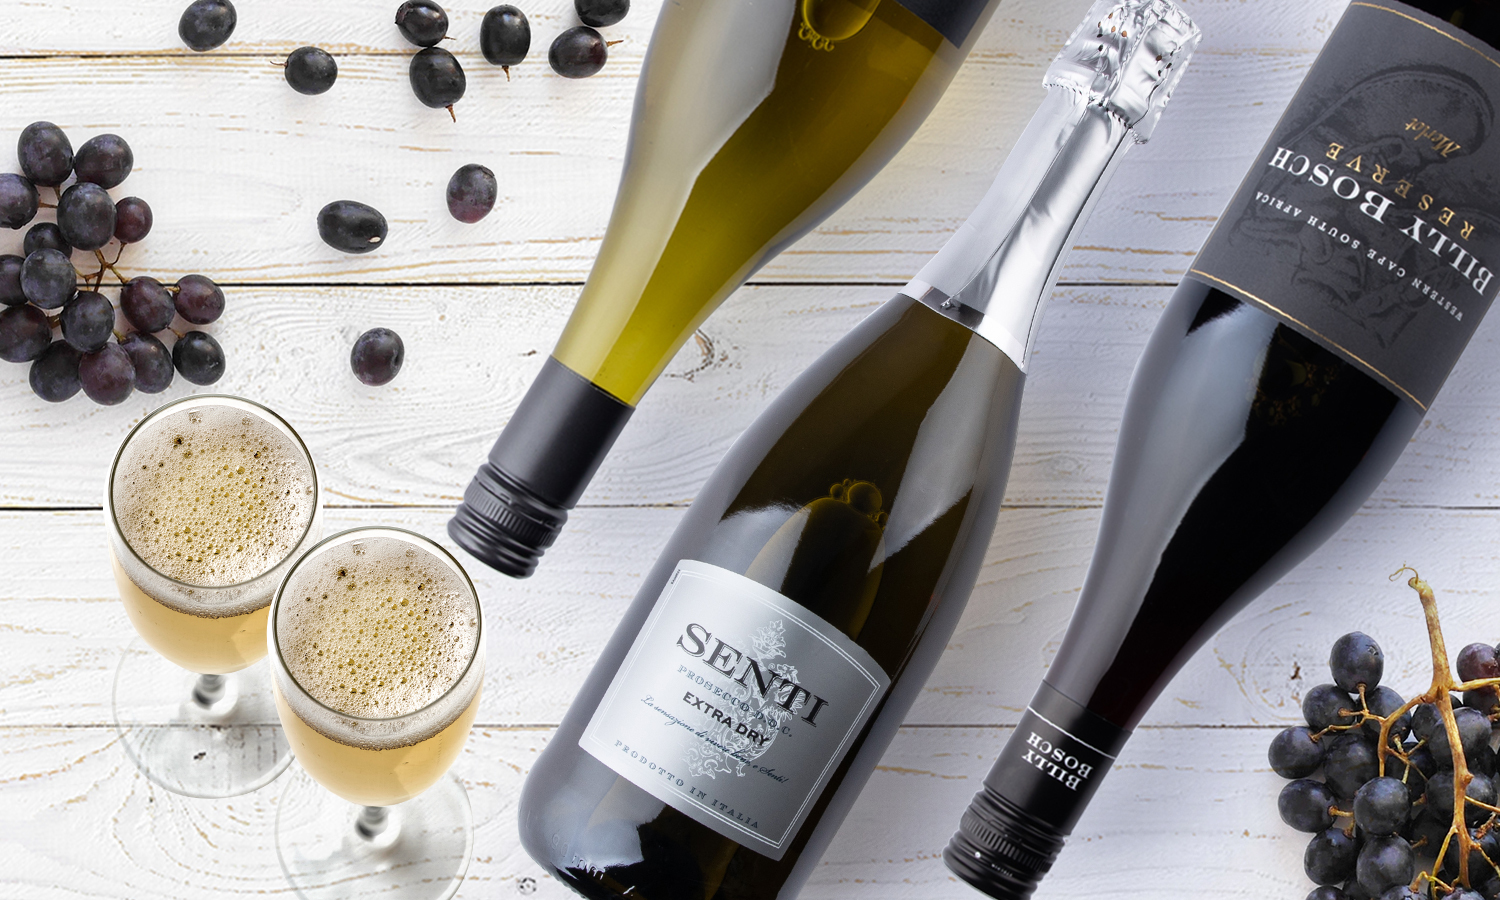 A £60 wine voucher from Virgin Wines plus a bottle of prosecco and free delivery